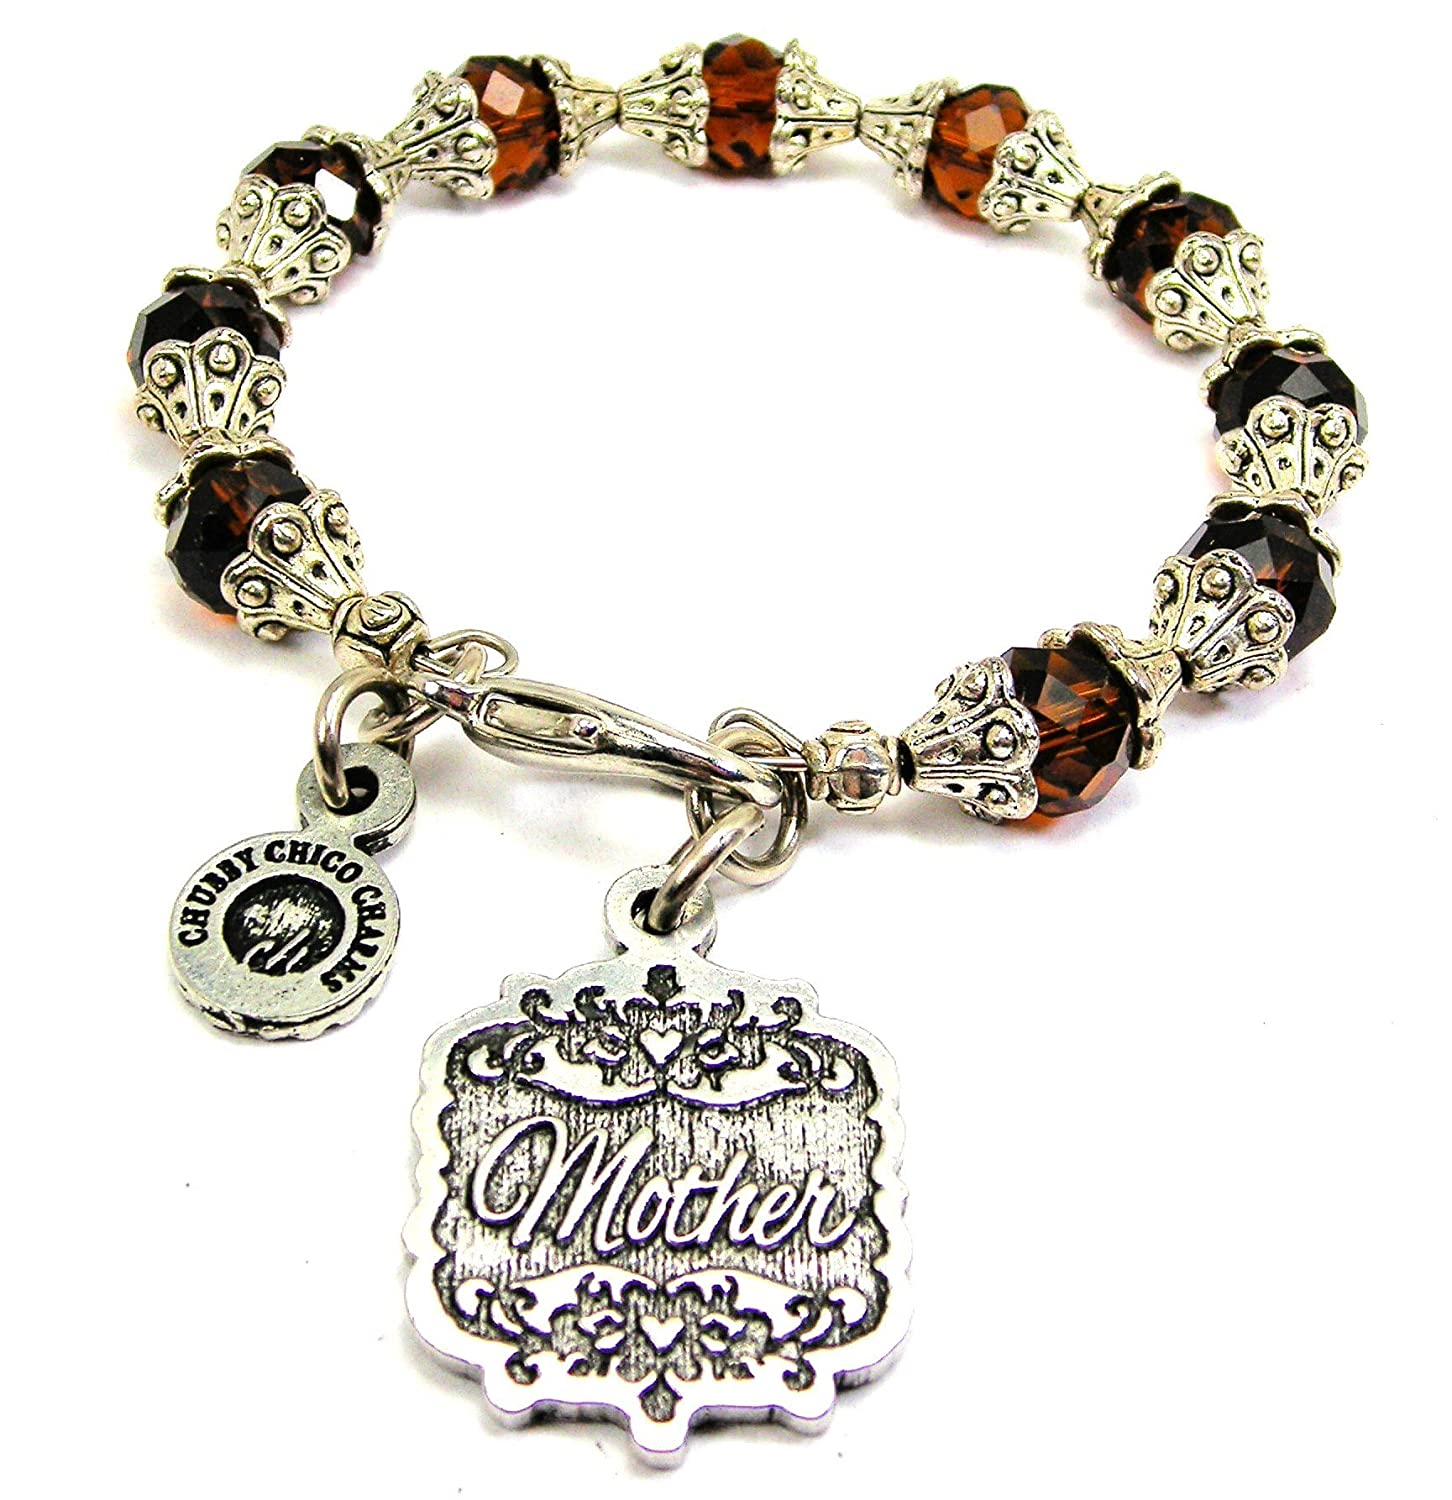 Chubby Chico Charms Mother Victorian Scroll Capped Crystal Bracelet in Chocolate Brown